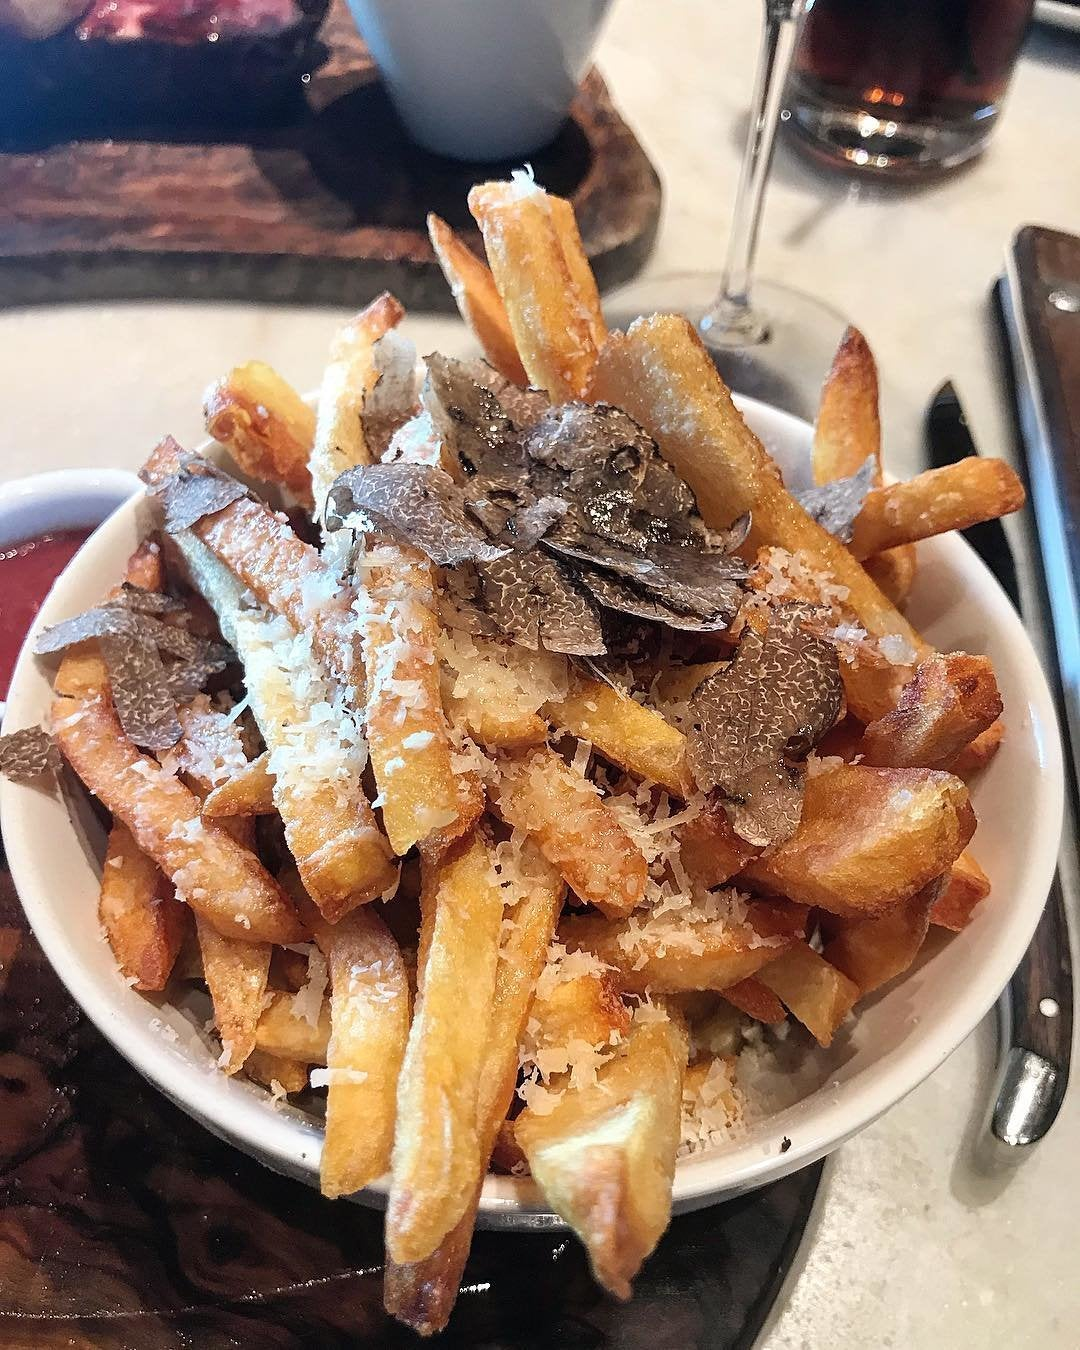 Truffle pomme frites at Wally's Beverly Hills